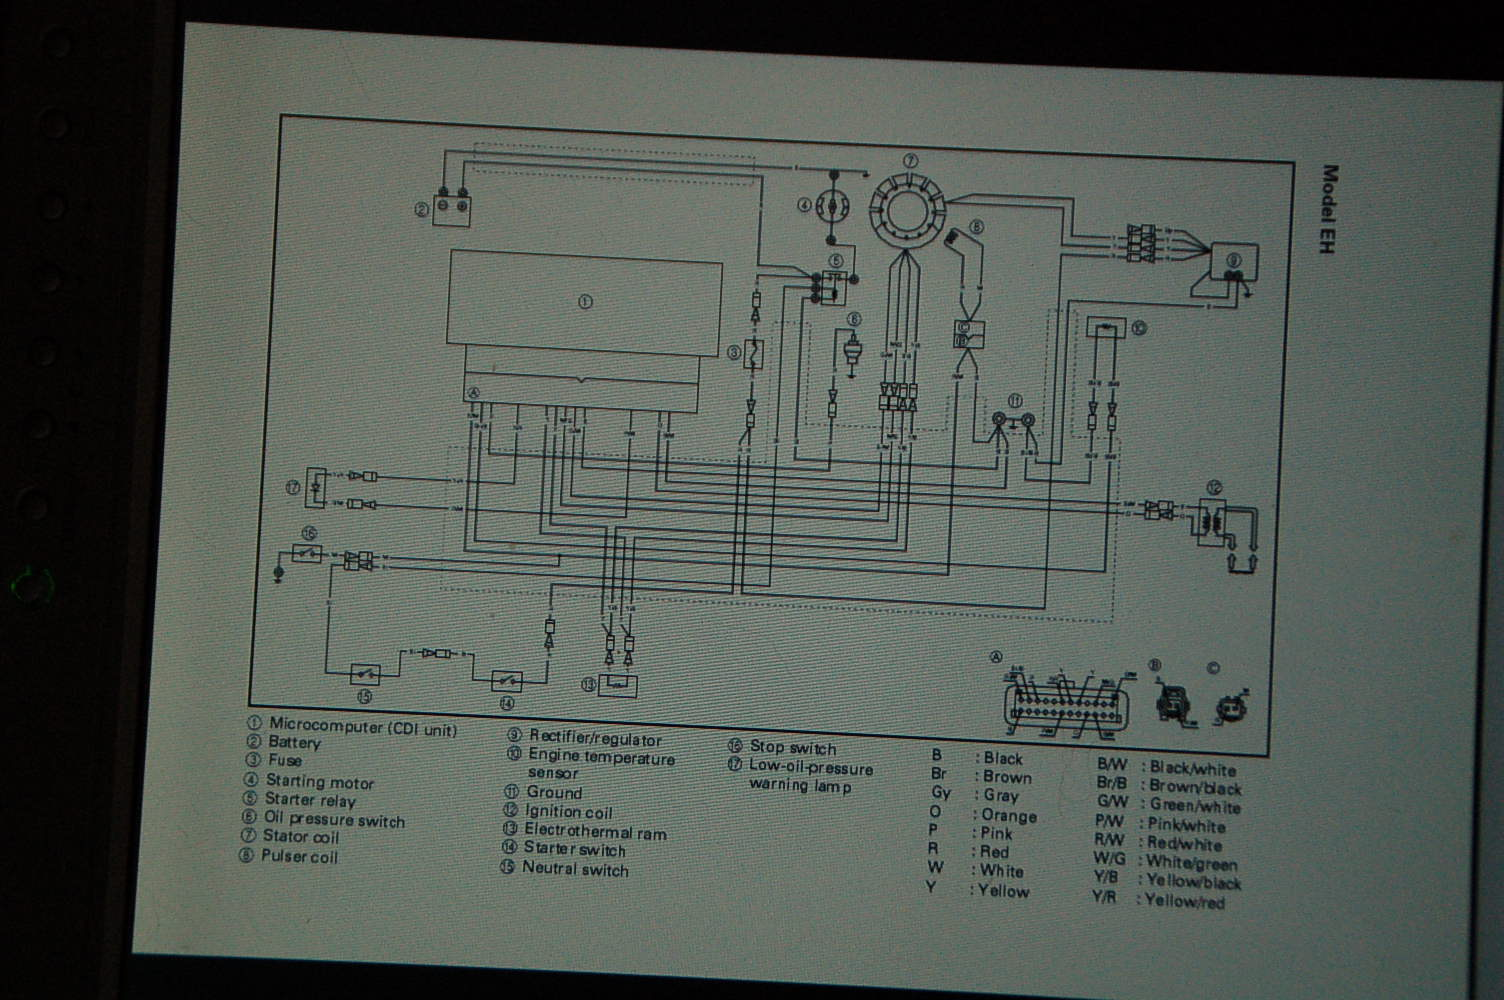 wiring up yamaha 30 boat design net yamaha ttr 225 wiring diagram at webbmarketing.co